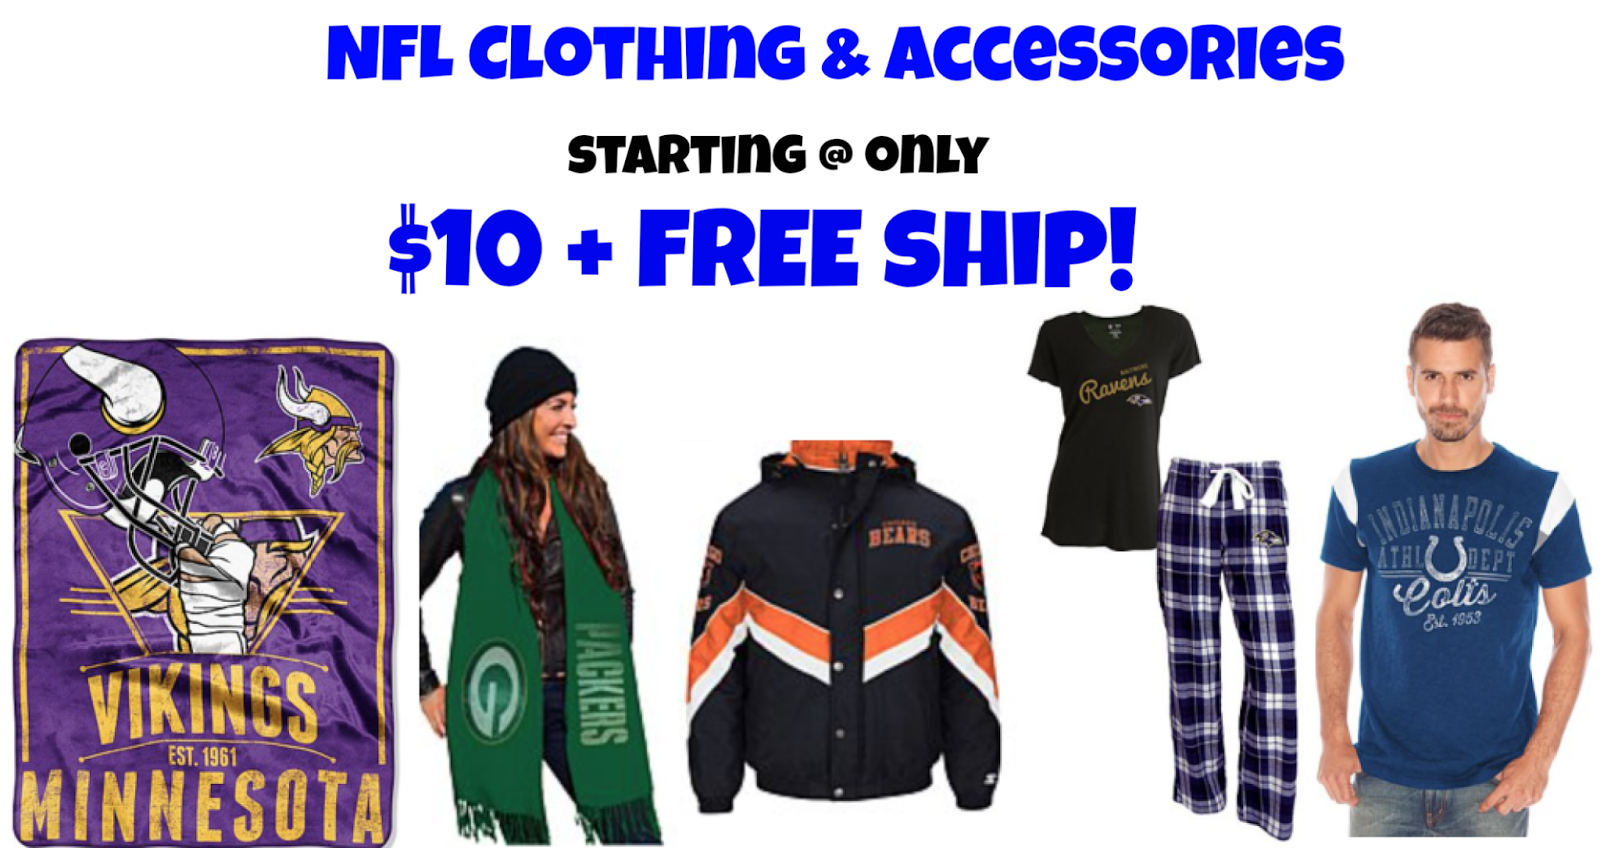 http://www.thebinderladies.com/2015/03/hot-hsn-com-nfl-items-starting-only-10.html#.VPe7nULduyM